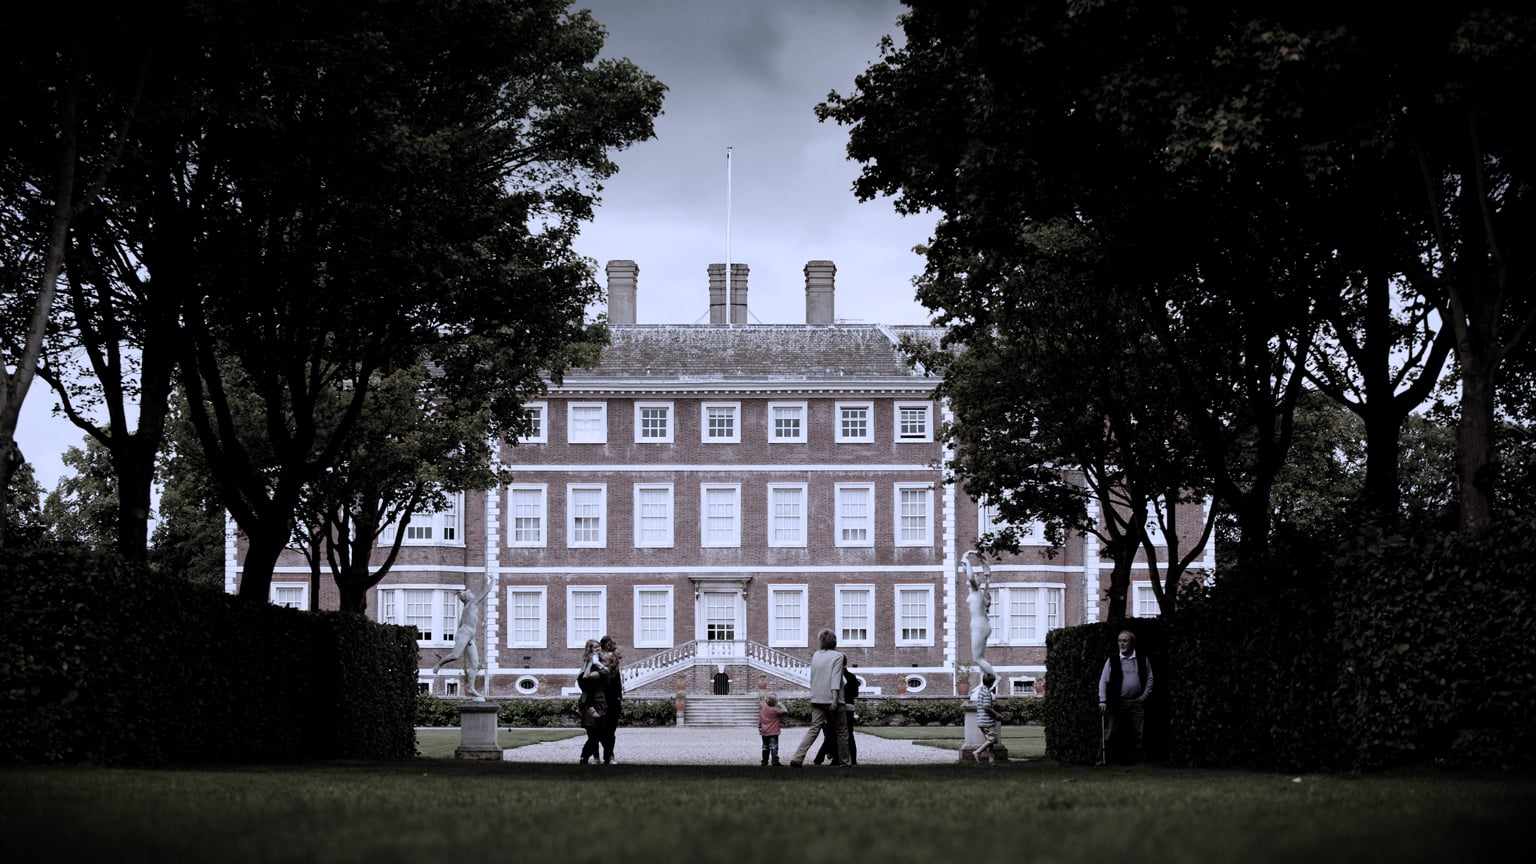 6) Ham House, Surrey - Free entry with National Art Pass